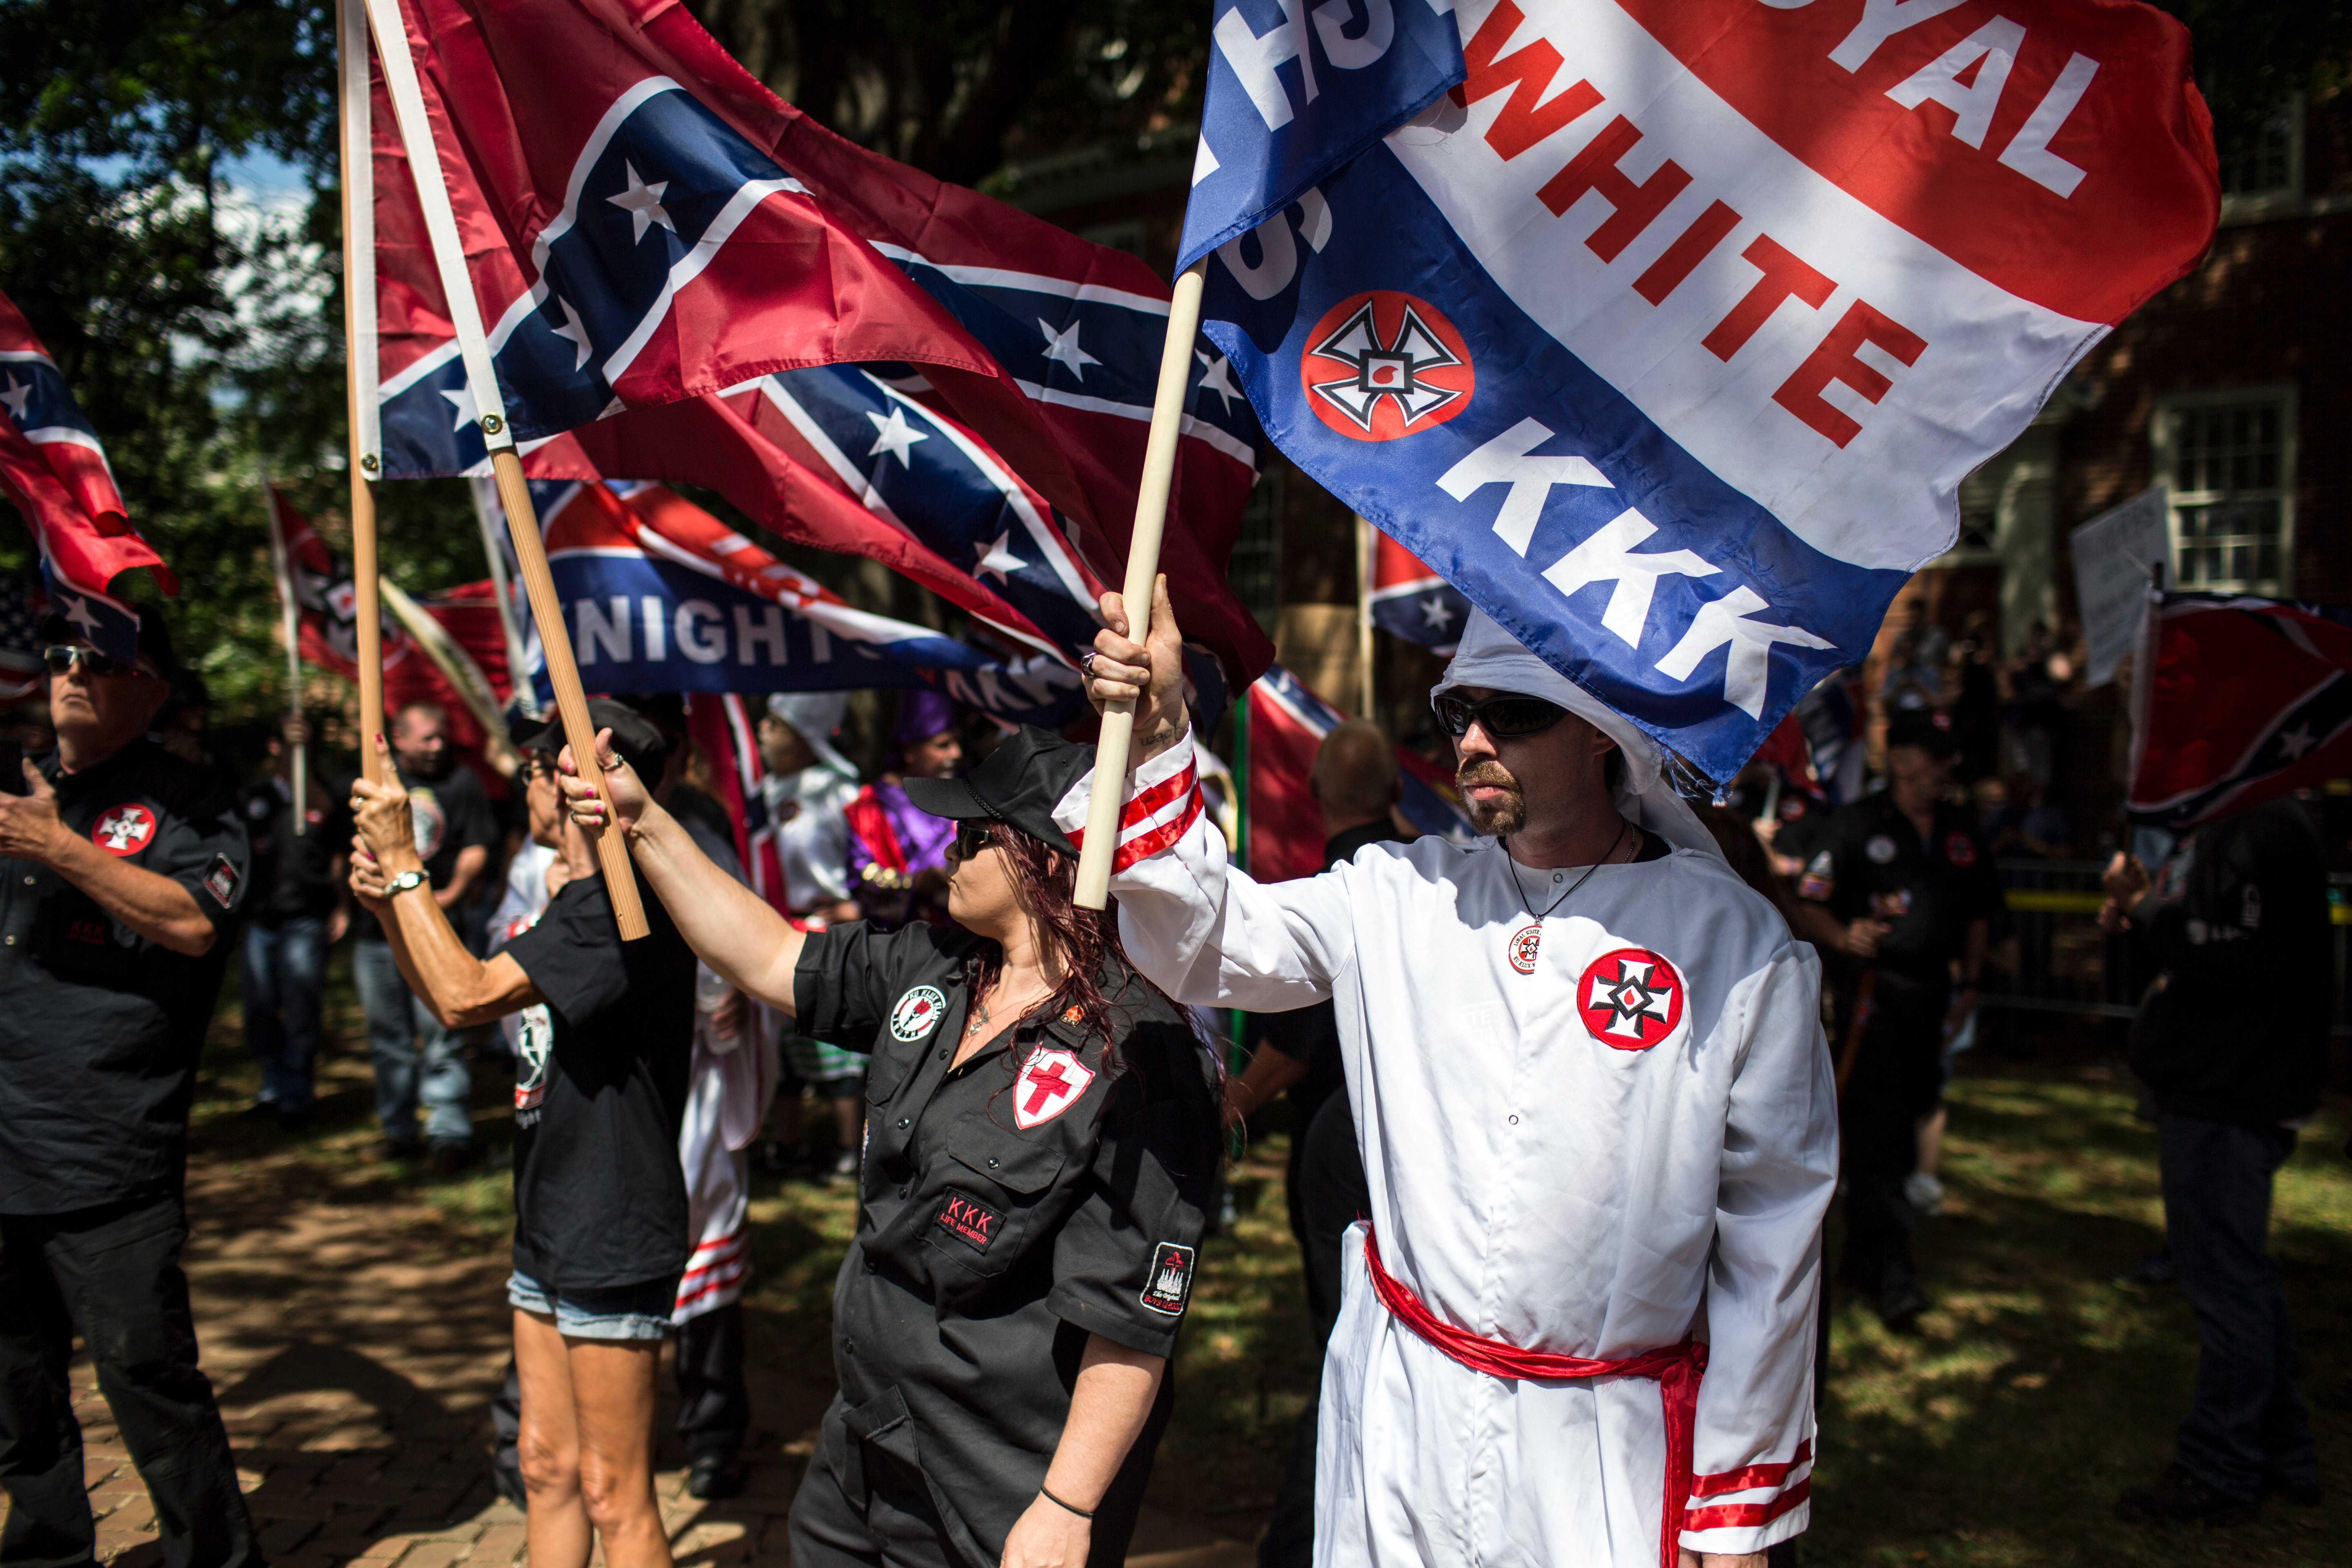 The Ku Klux Klan protests on July 8, 2017 in Charlottesville, Virginia. (Photo by Chet Strange/Getty Images)